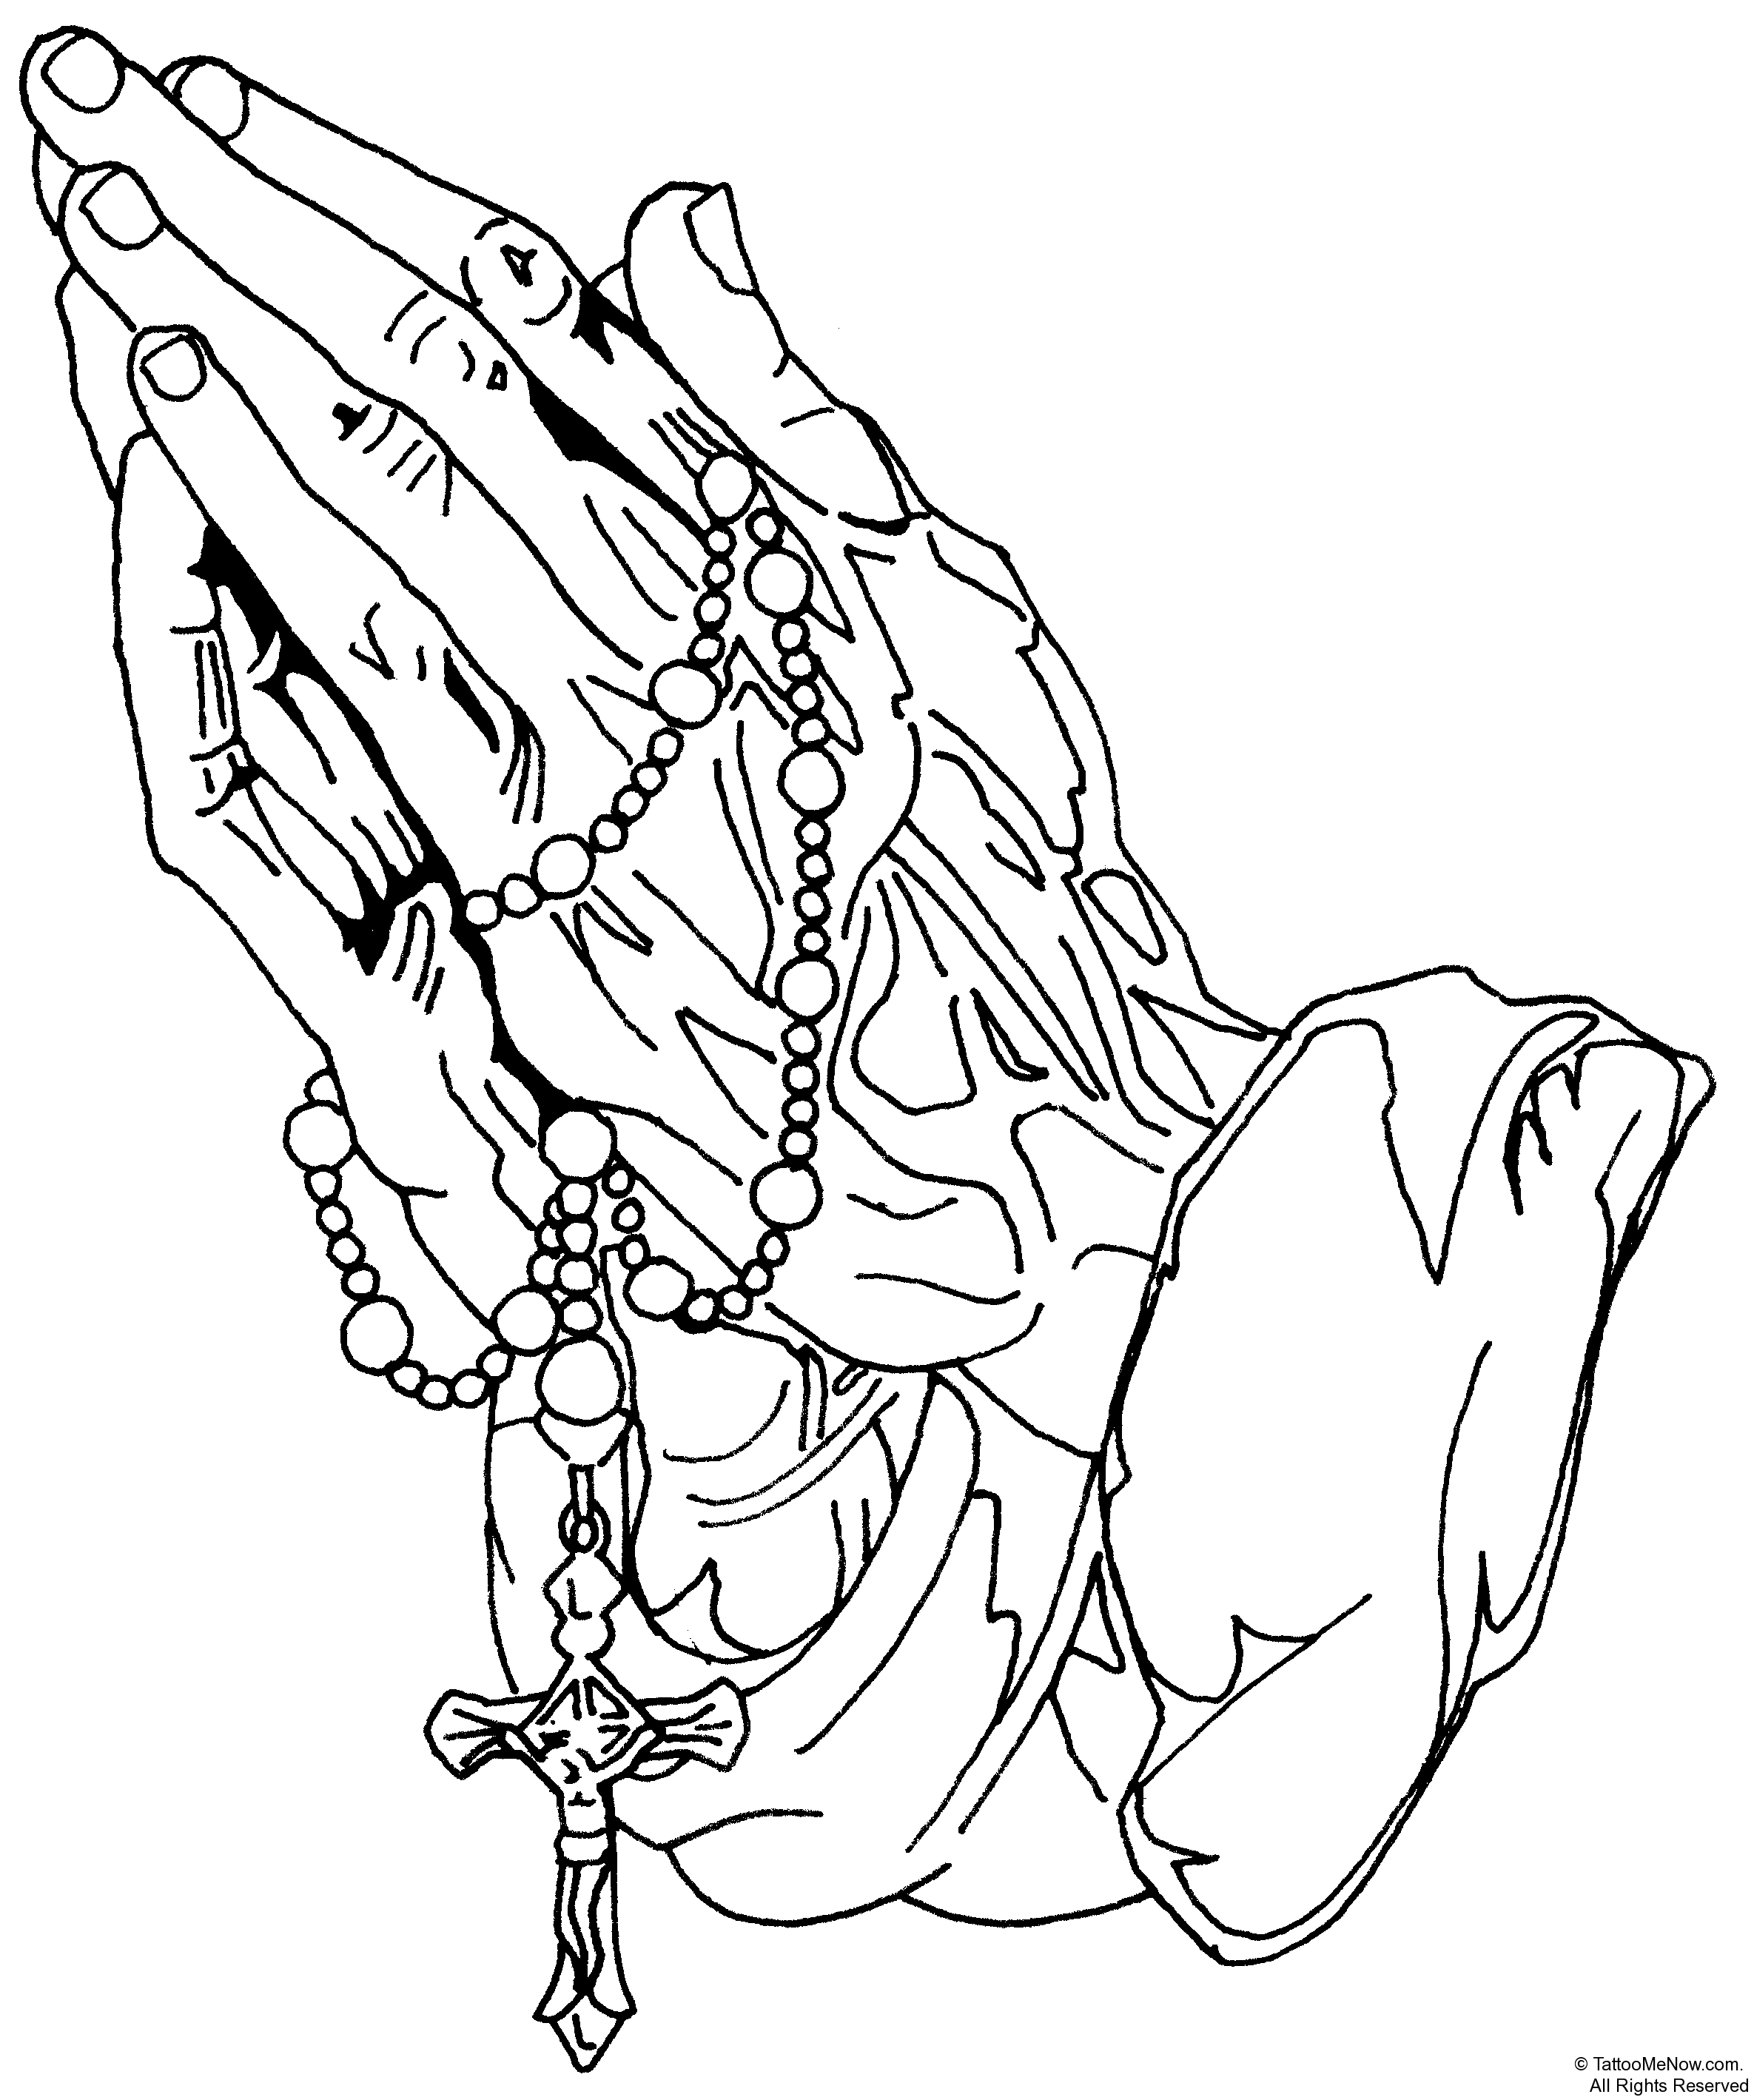 2370x2837 Top Praying Hands Coloring Page Drawings Of Google Search Hand